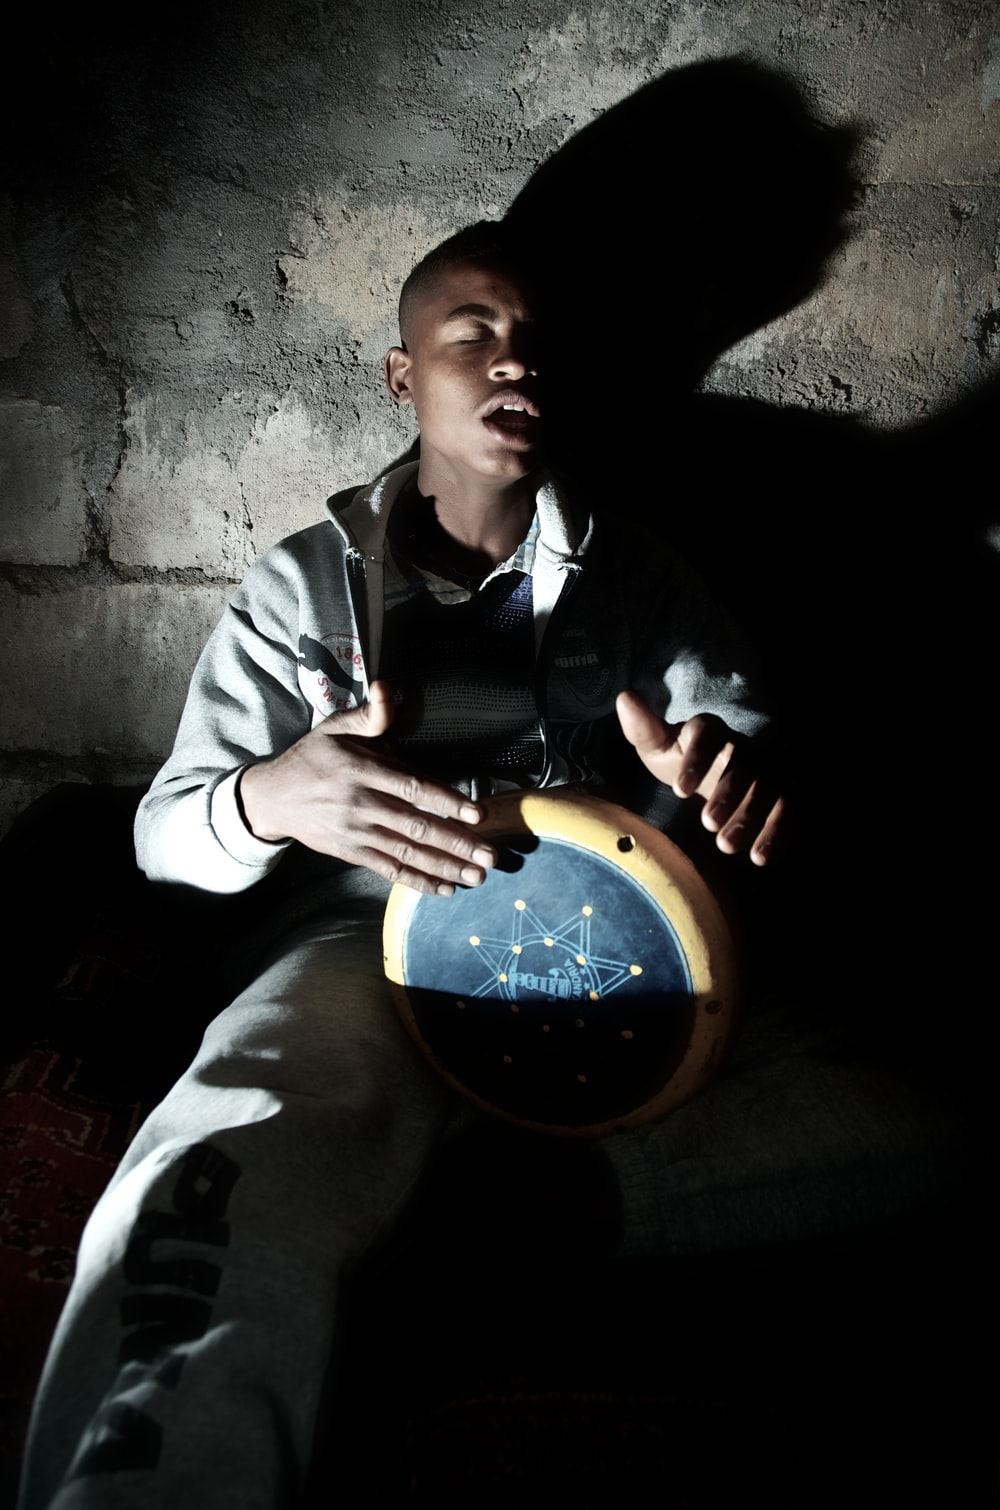 man playing percussion instrument near wall